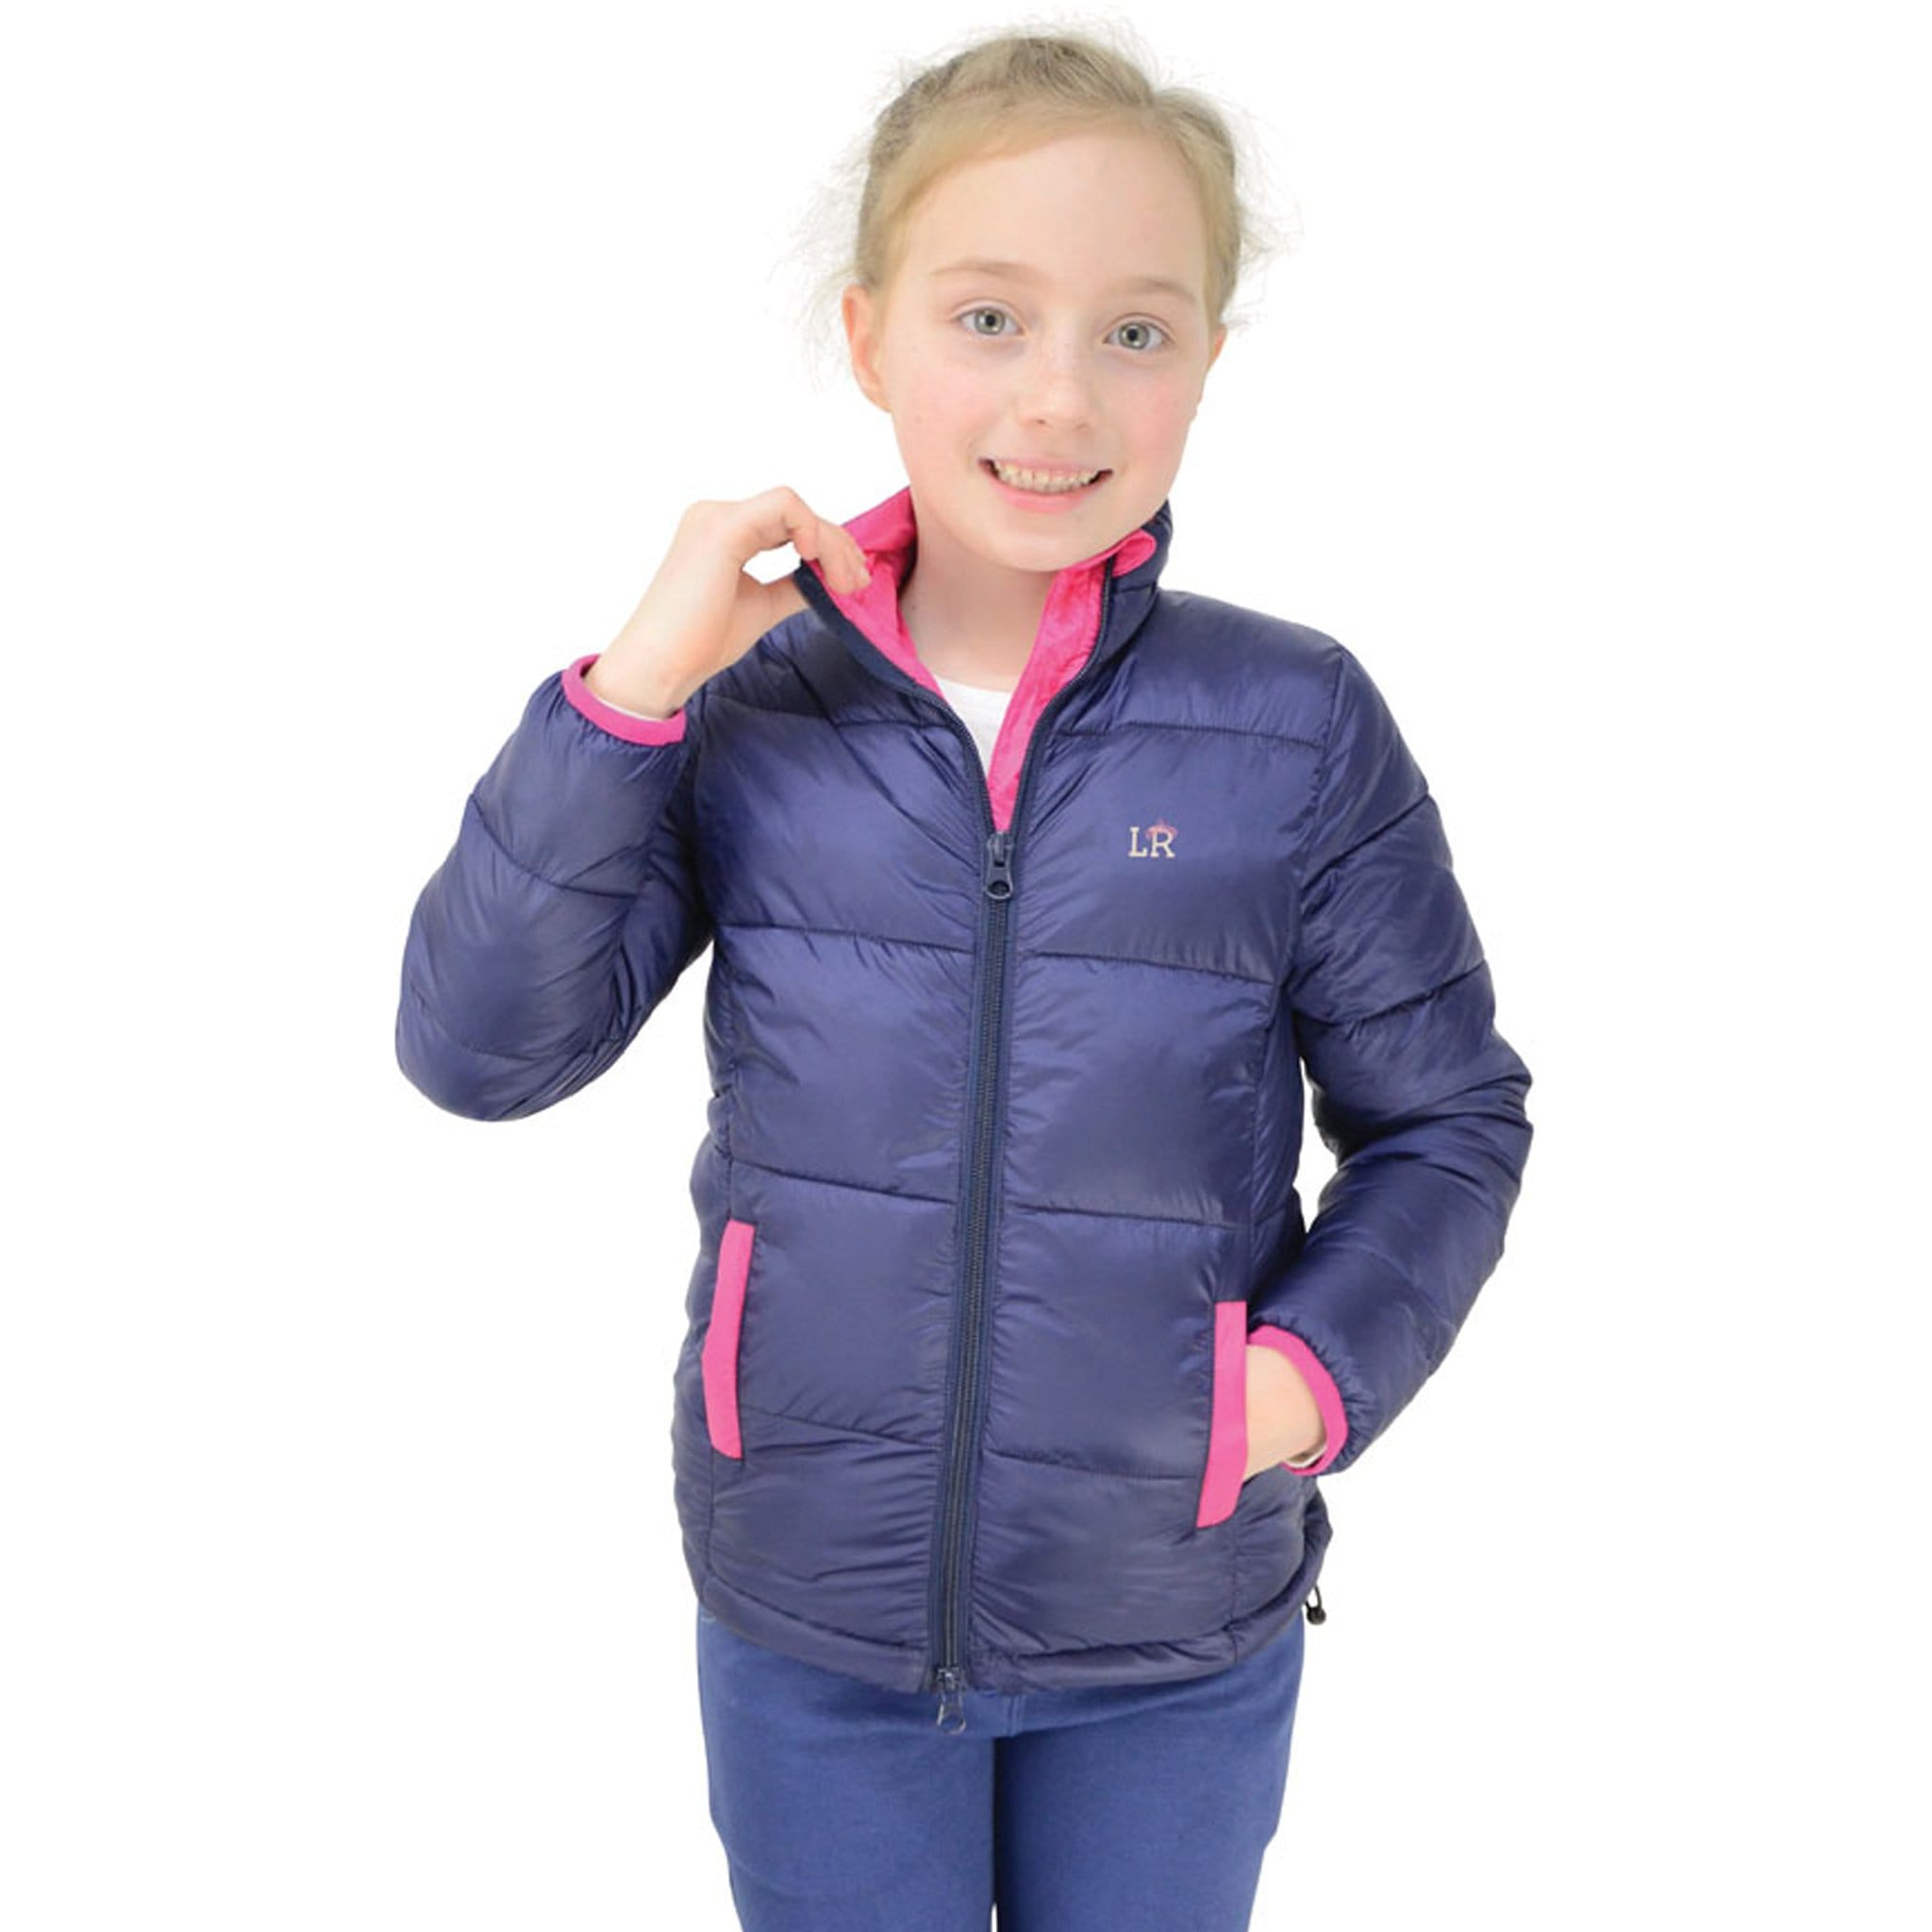 Hy Little Rider Annabelle Padded Jacket Collar 22078.